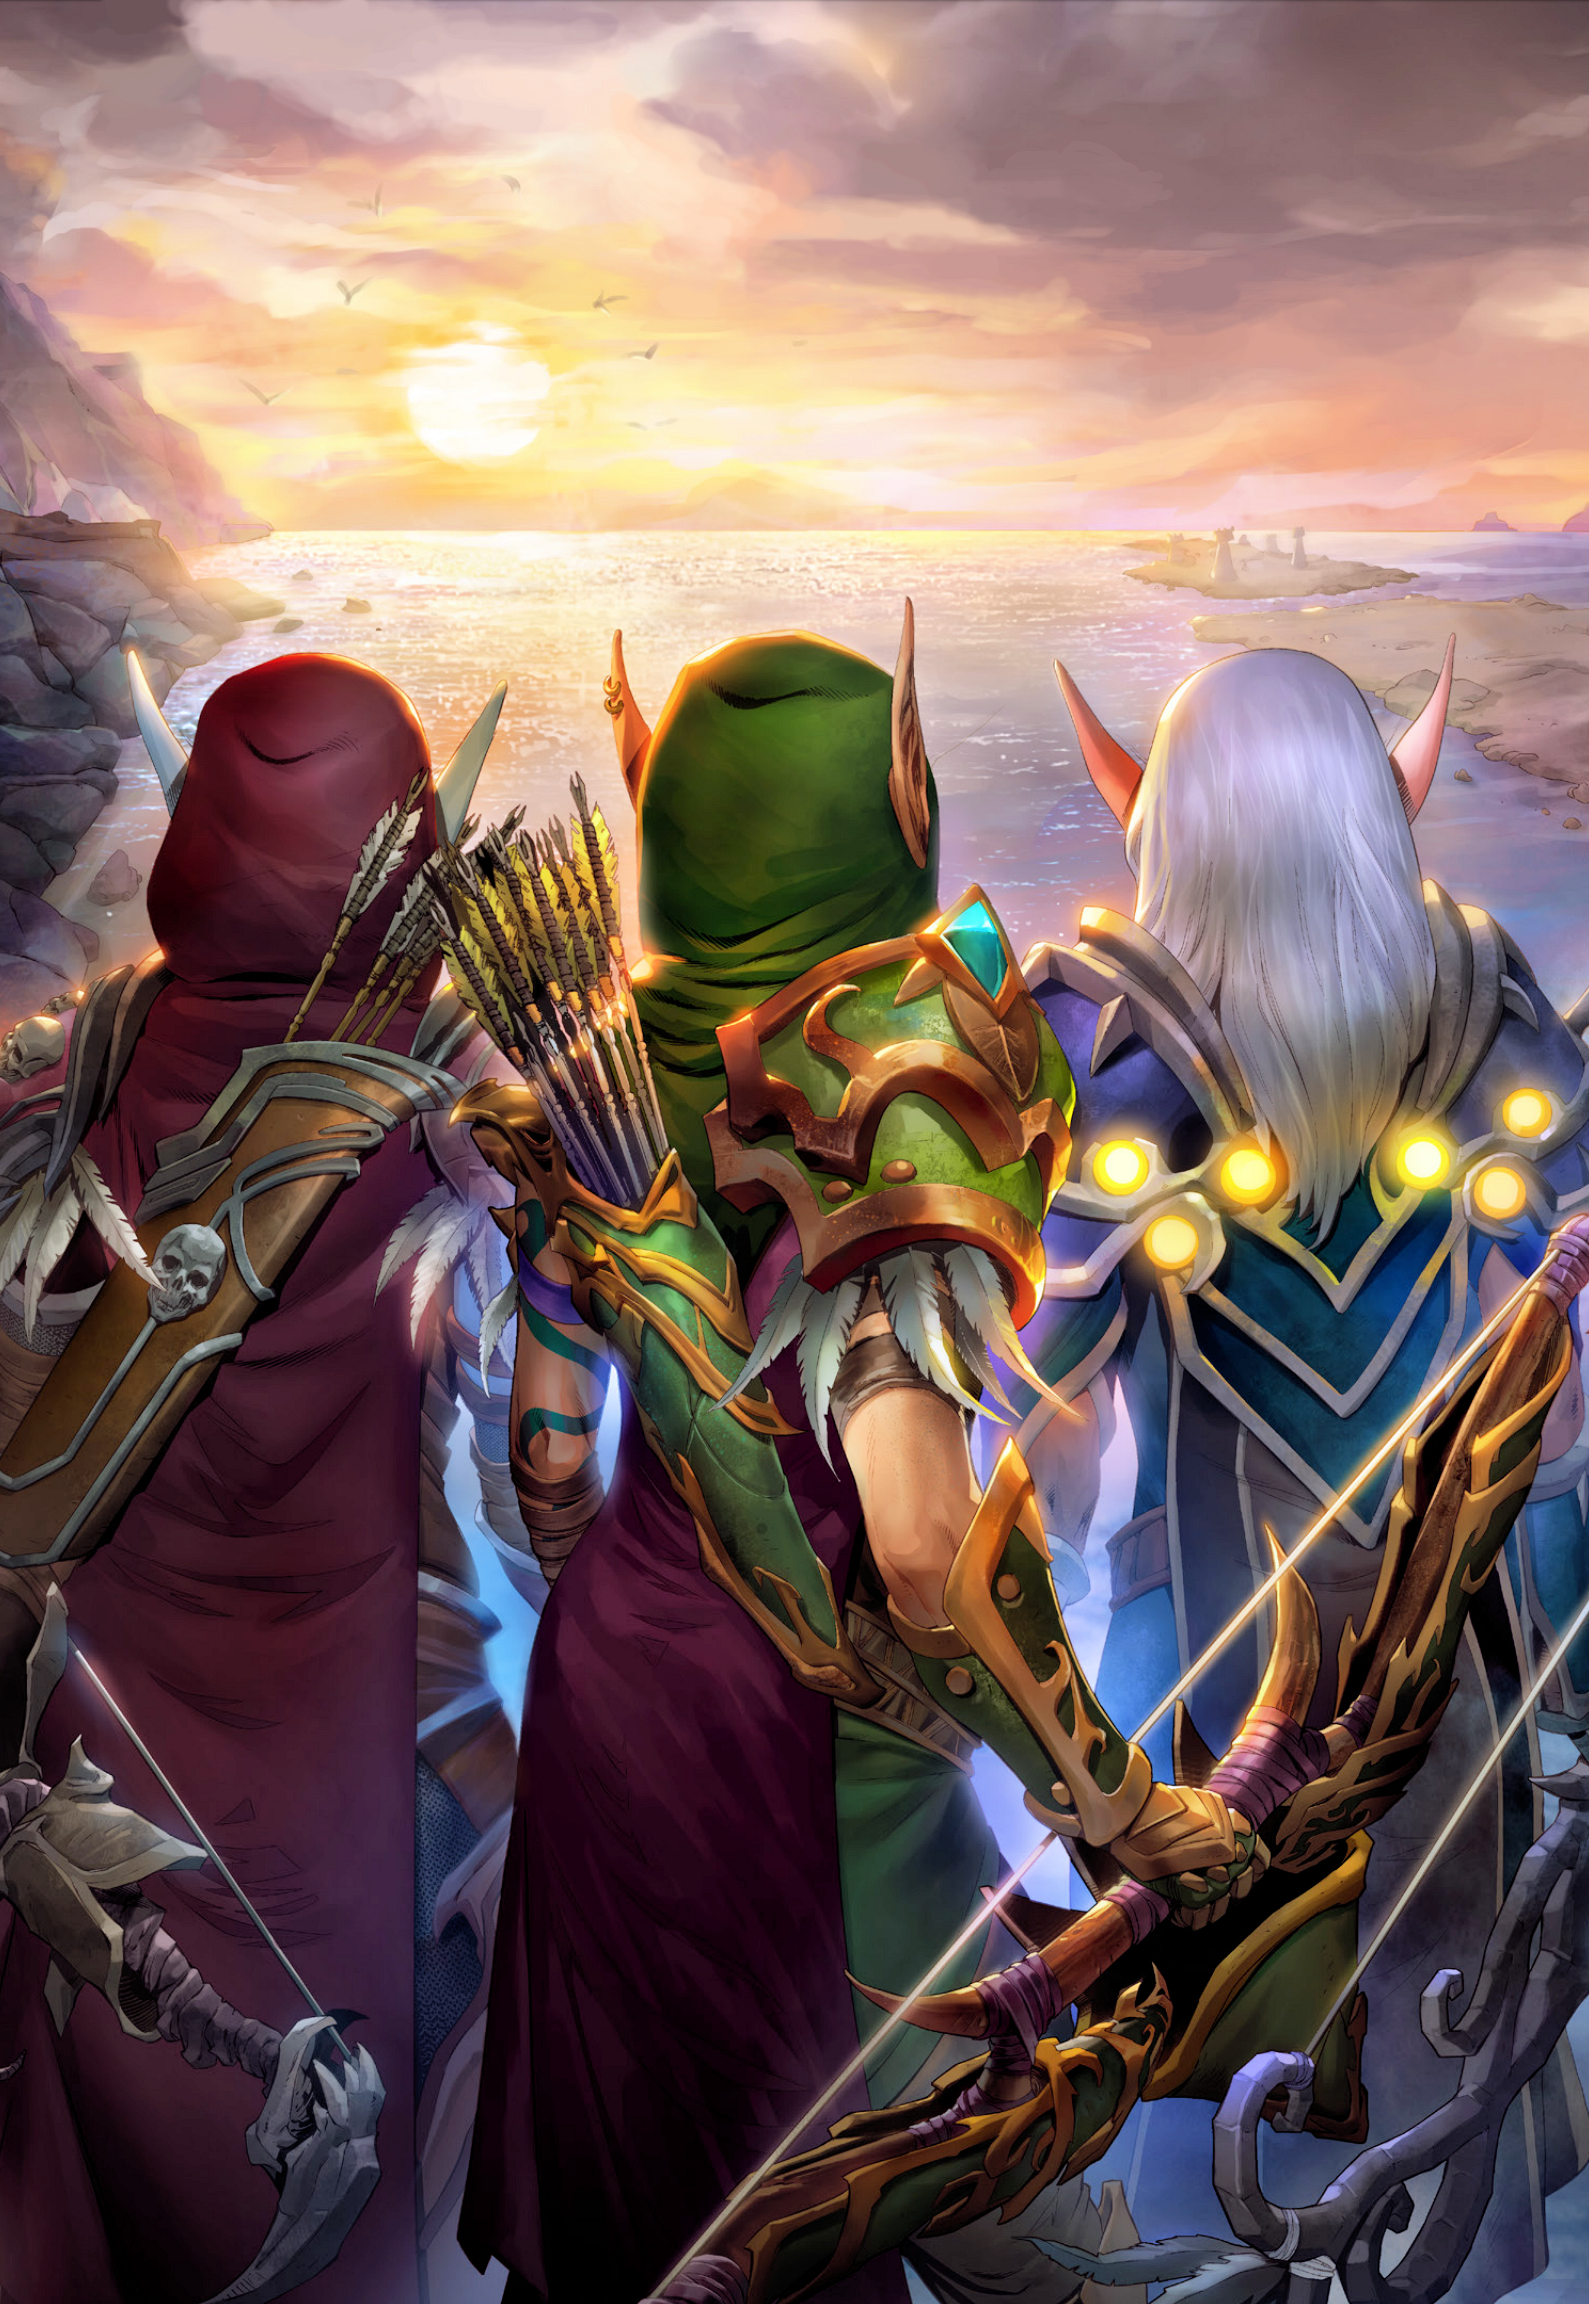 I Wanted To Use This As A Phone Wallpaper So I Very Amateurly Edited The Text Out If Anyone Els World Of Warcraft Game World Of Warcraft Wallpaper Warcraft Art